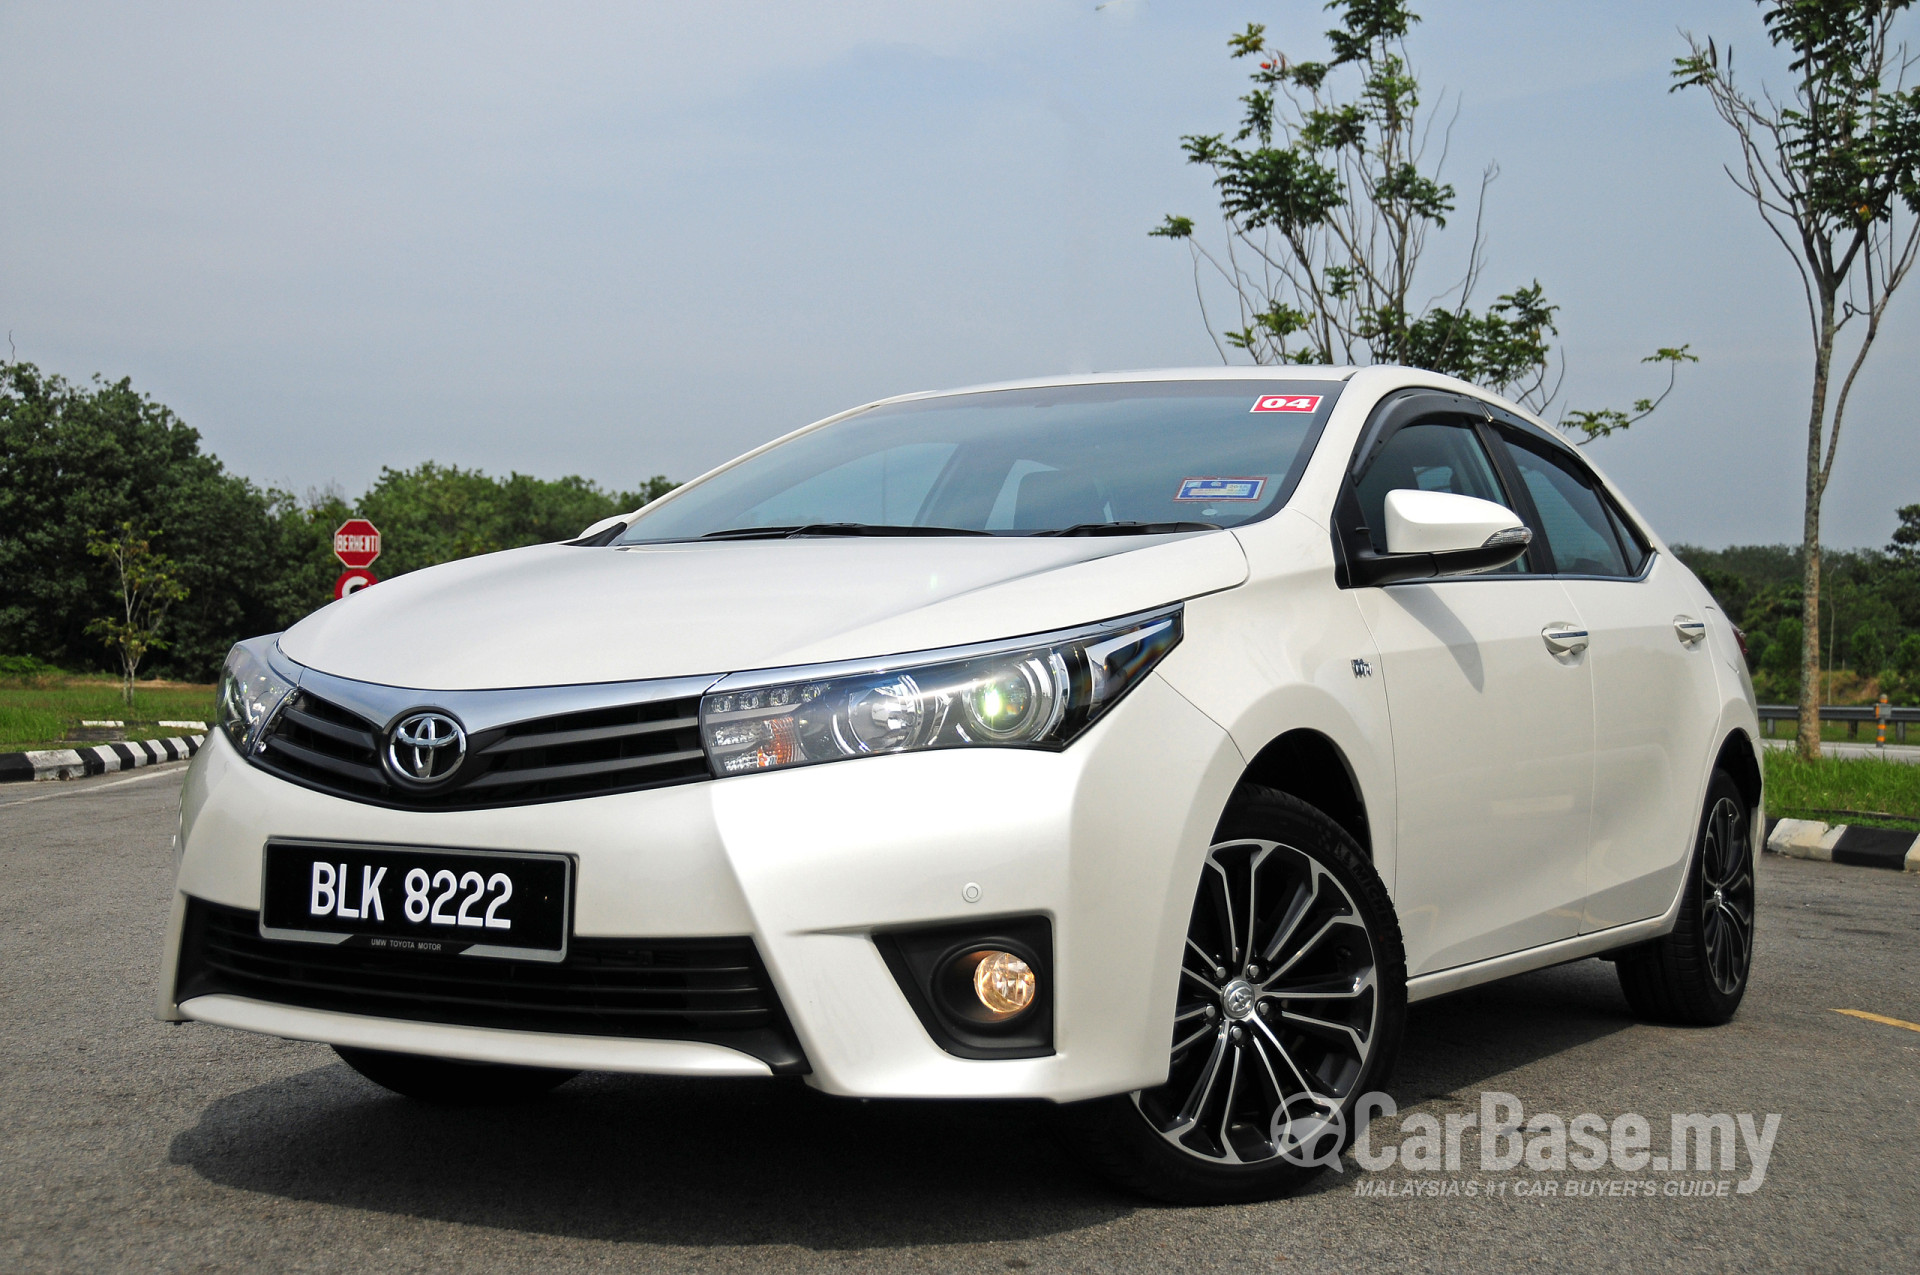 toyota corolla altis mk11 2014 exterior image in malaysia reviews specs prices. Black Bedroom Furniture Sets. Home Design Ideas